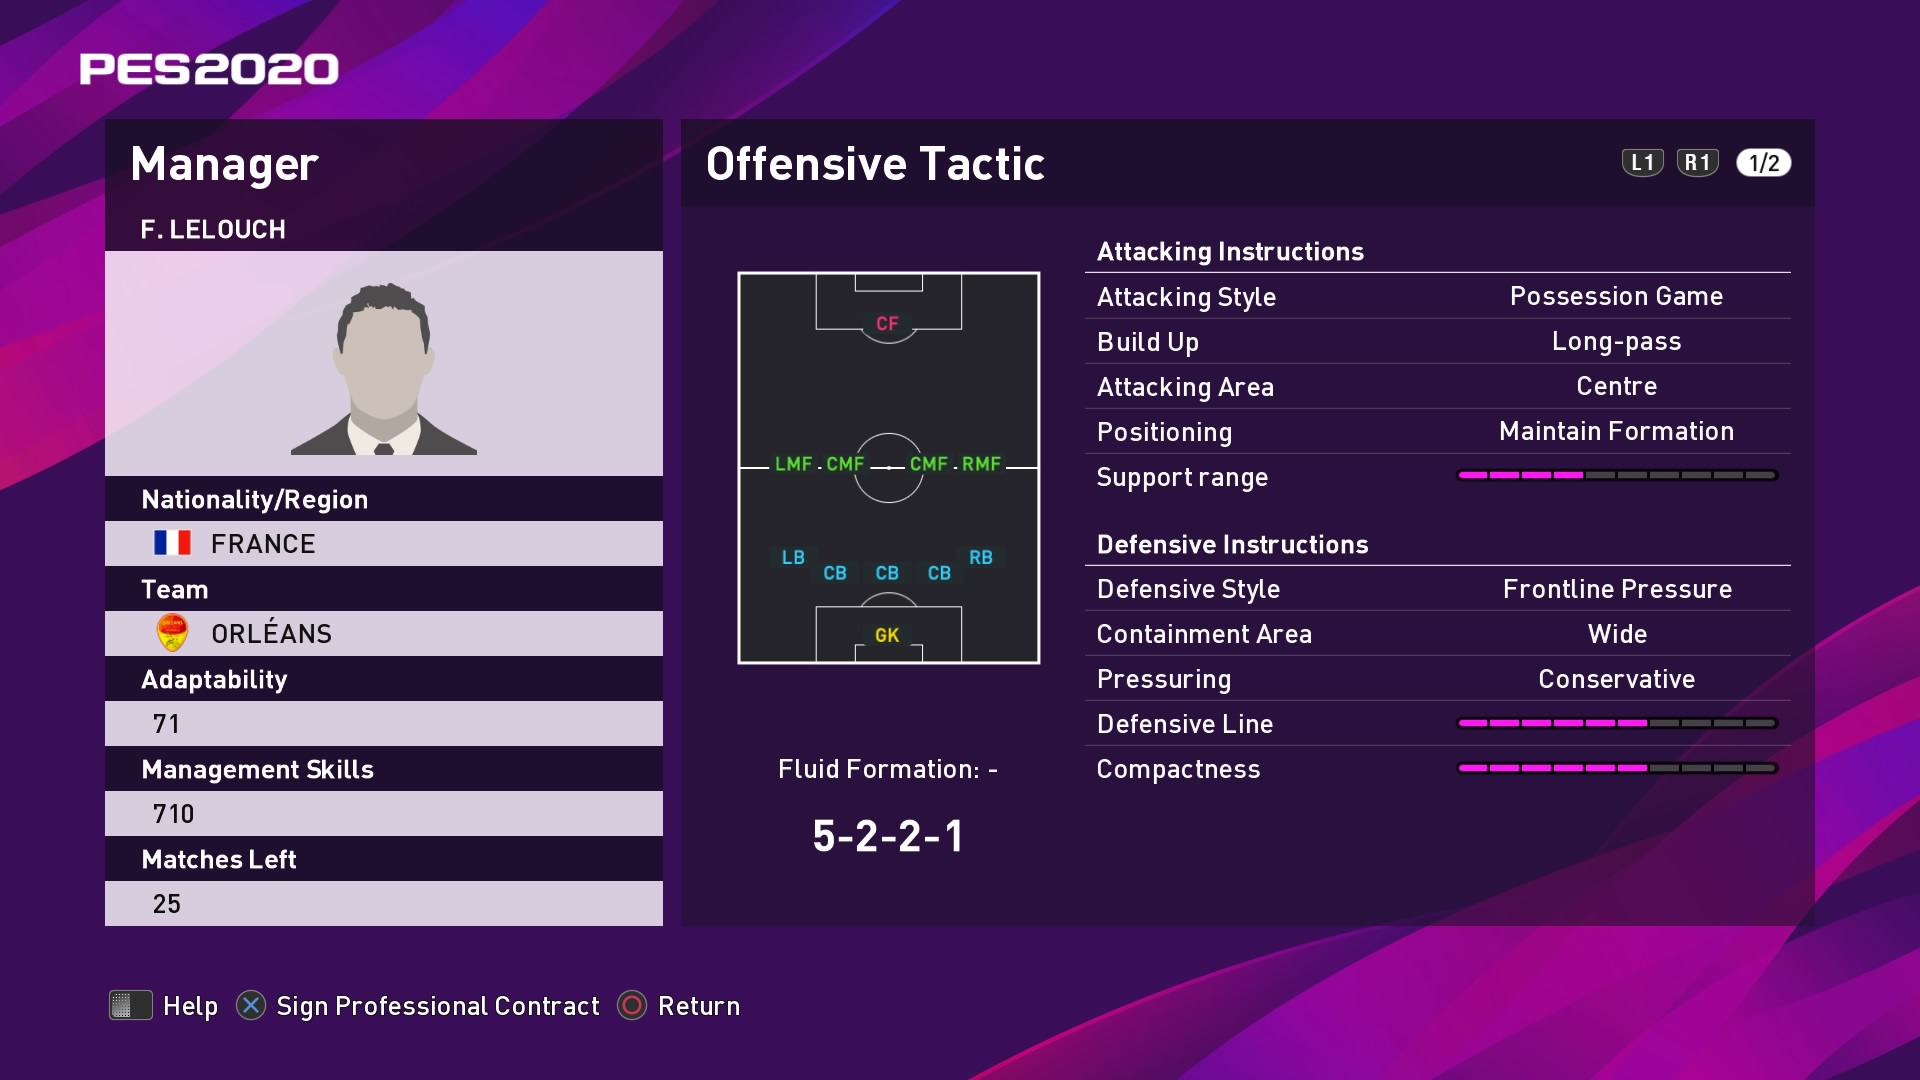 F. Lelouch (Didier Ollé-Nicolle) Offensive Tactic in PES 2020 myClub